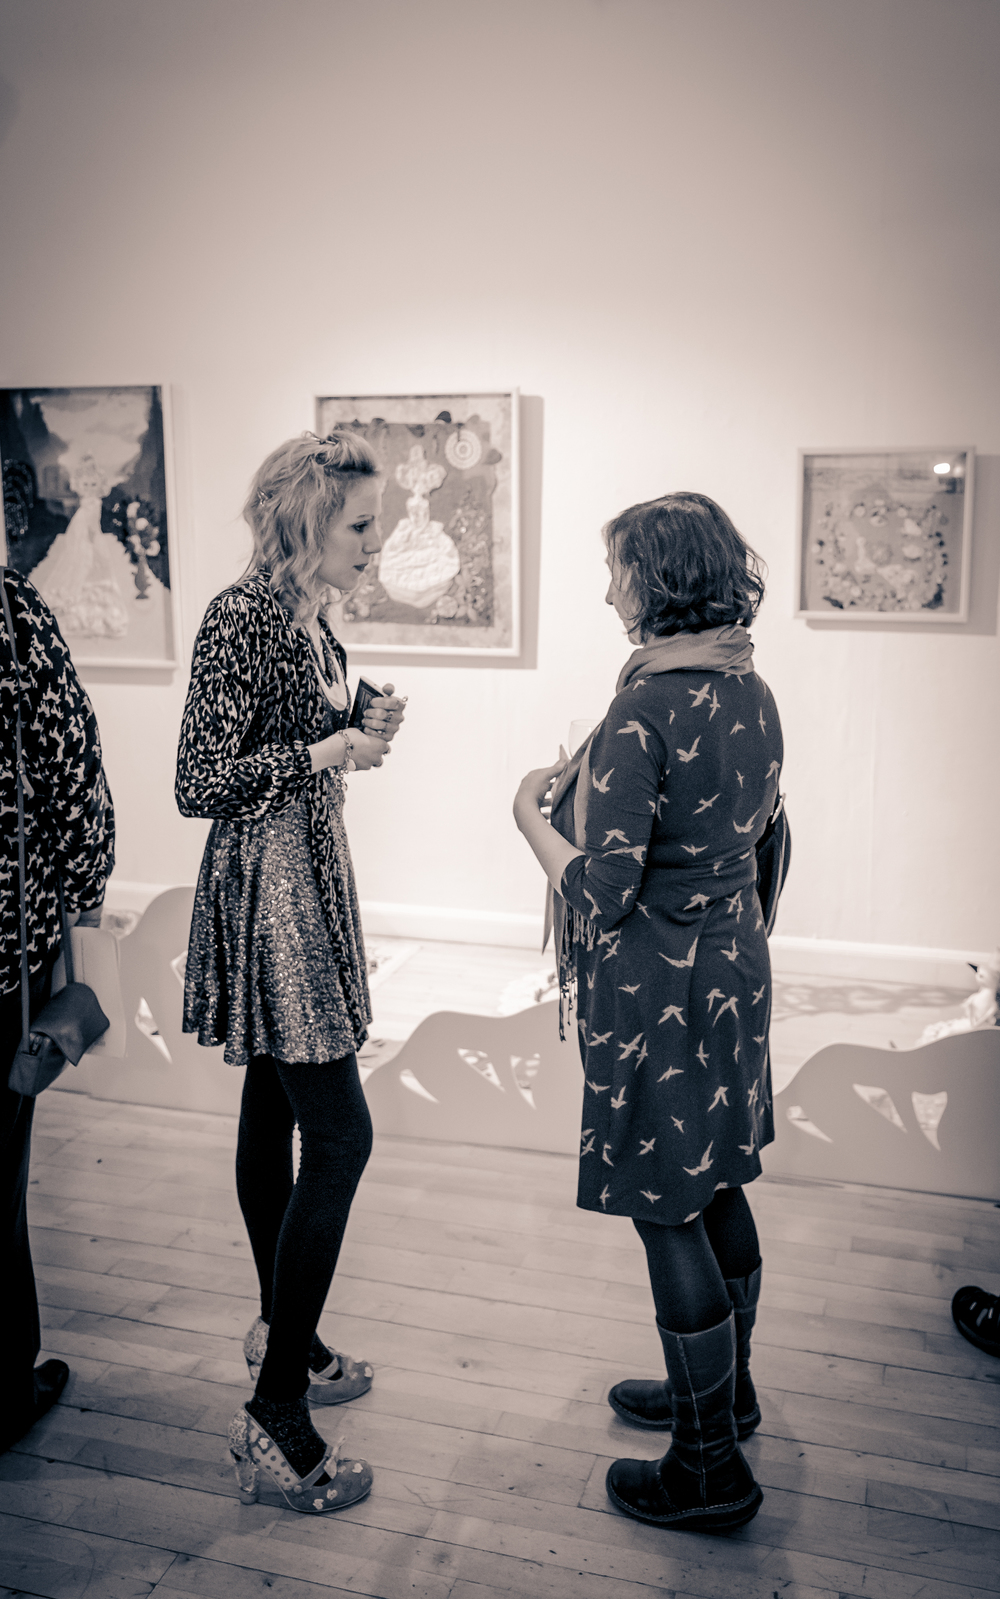 'In Dreams' Exhibition opening night - 2013